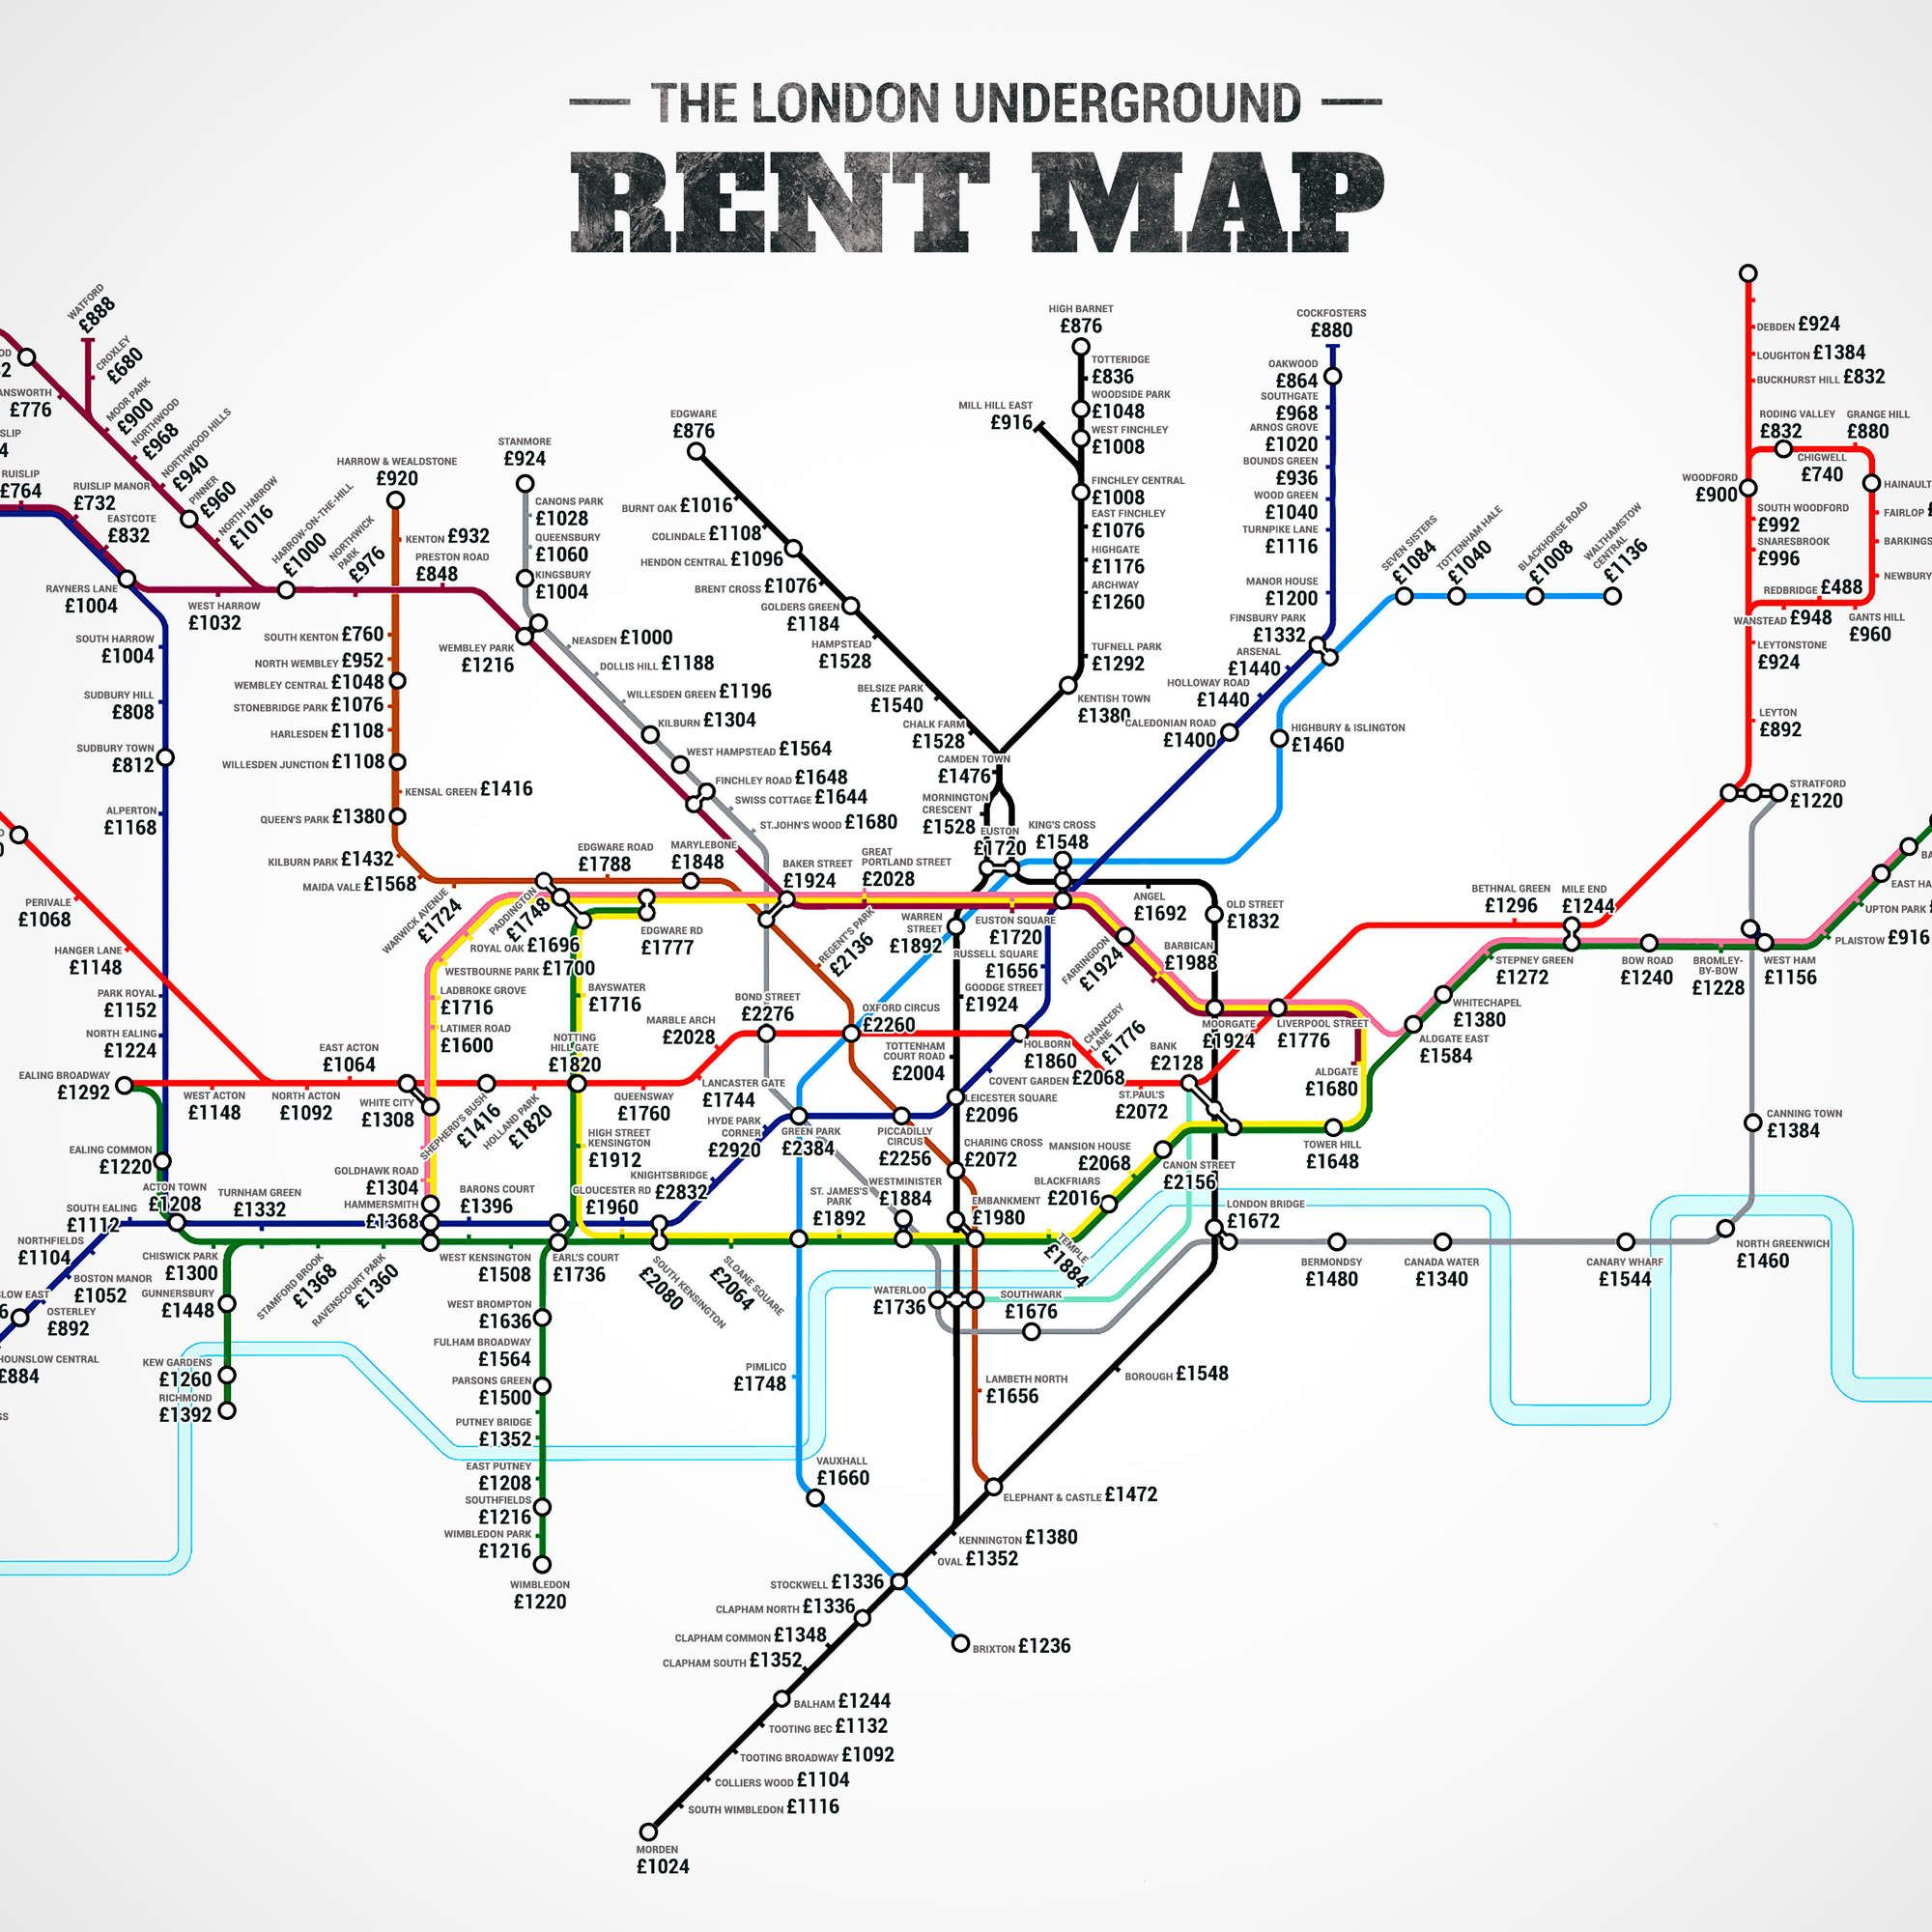 For Rent Map: The London Underground Rent Map: Where You Can't Afford To